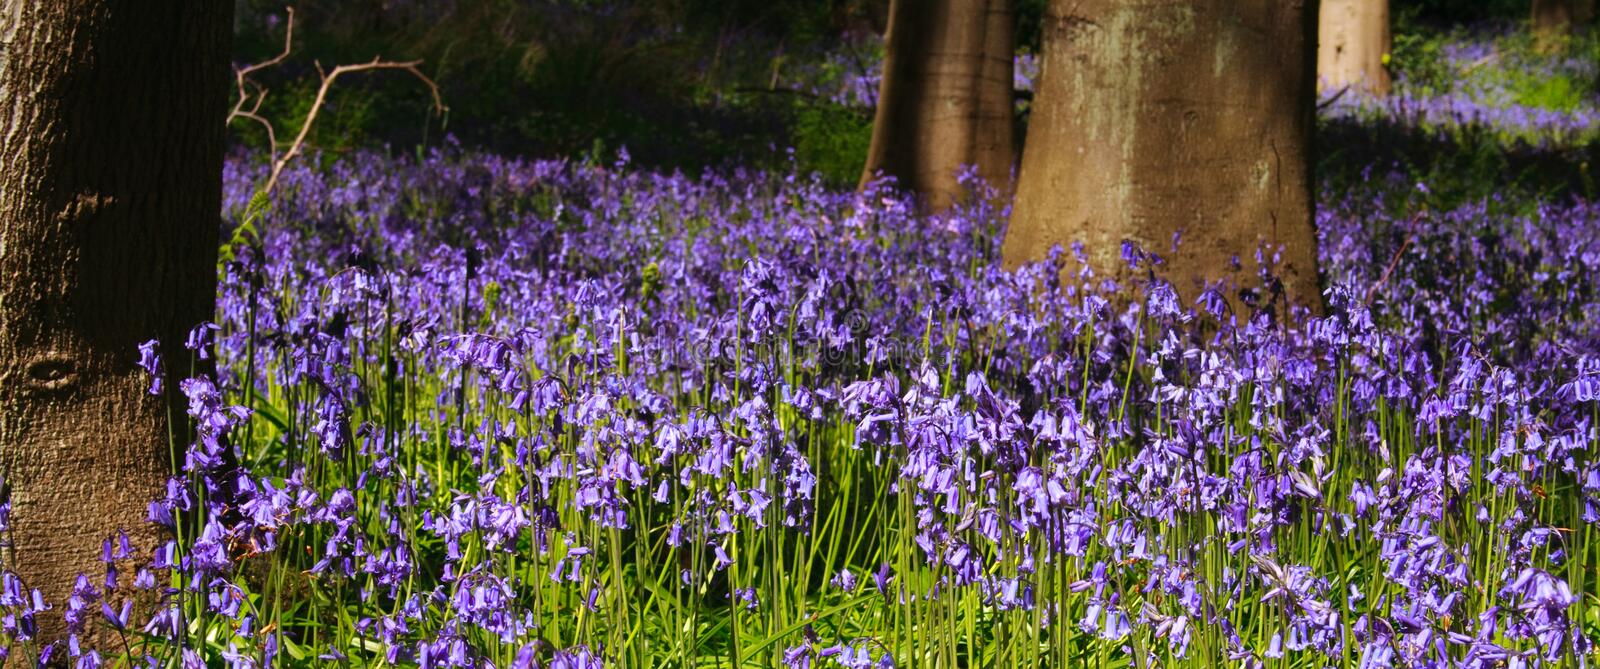 Panoramic Bluebell wood with trees close-up royalty free stock image